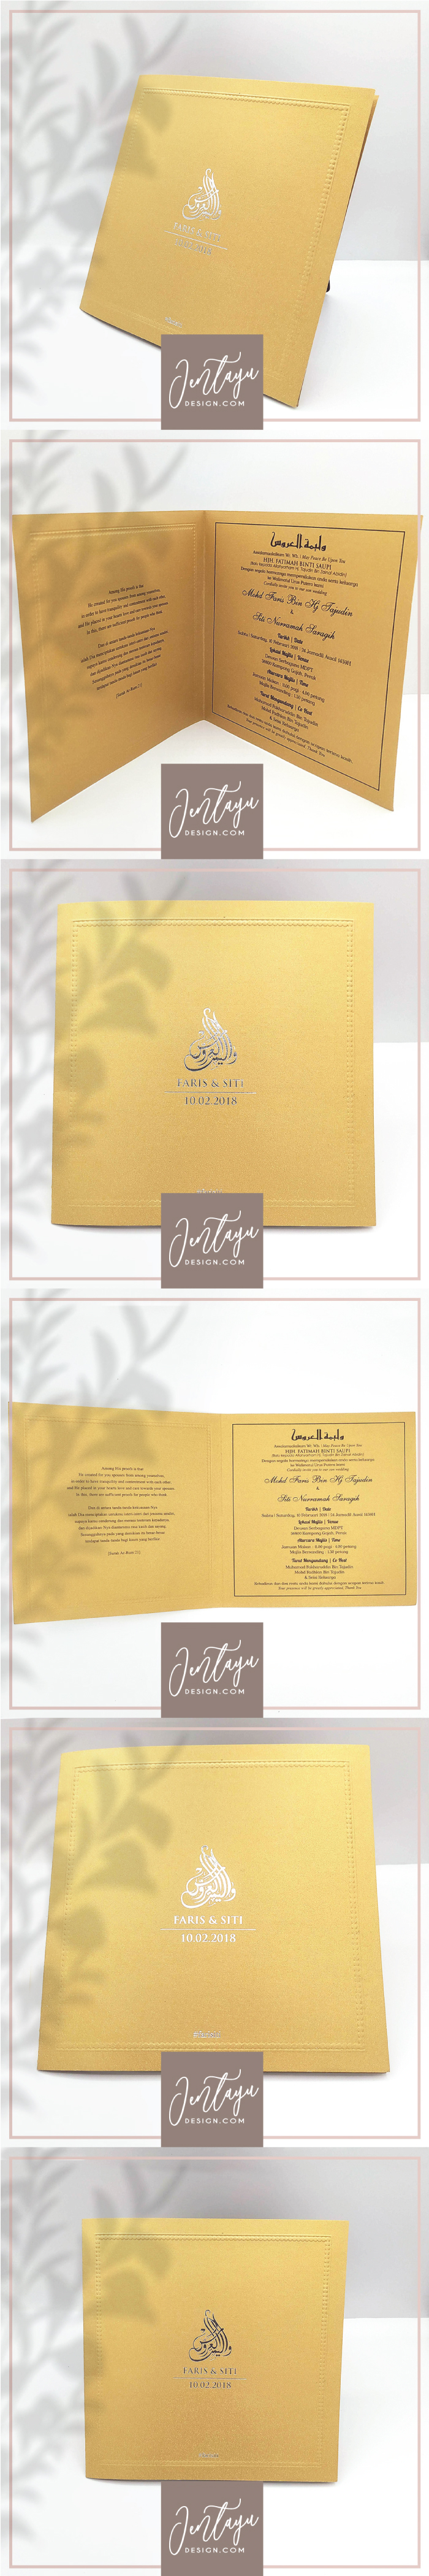 jentayu design kad kahwin formal vip royal berlipat metallic folded wedding cards square 6x6